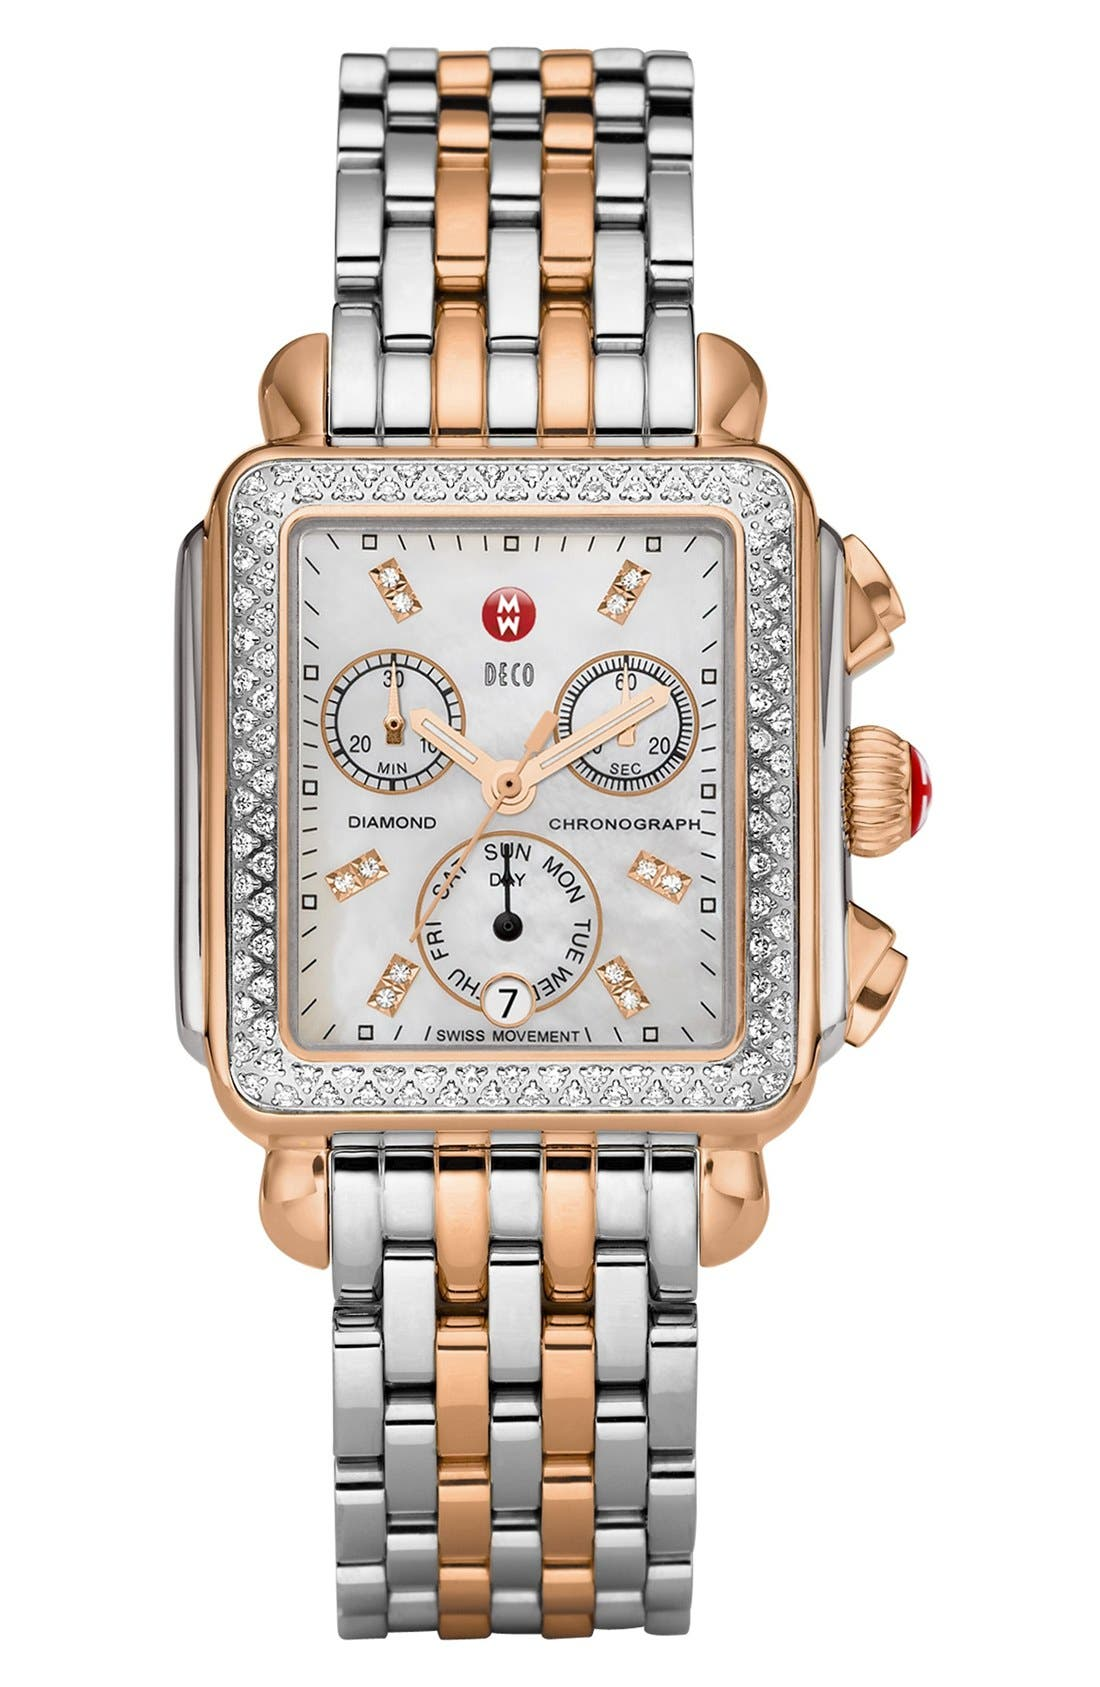 Deco Diamond Diamond Dial Watch Case, 33mm x 35mm,                             Alternate thumbnail 7, color,                             SILVER/ ROSE GOLD